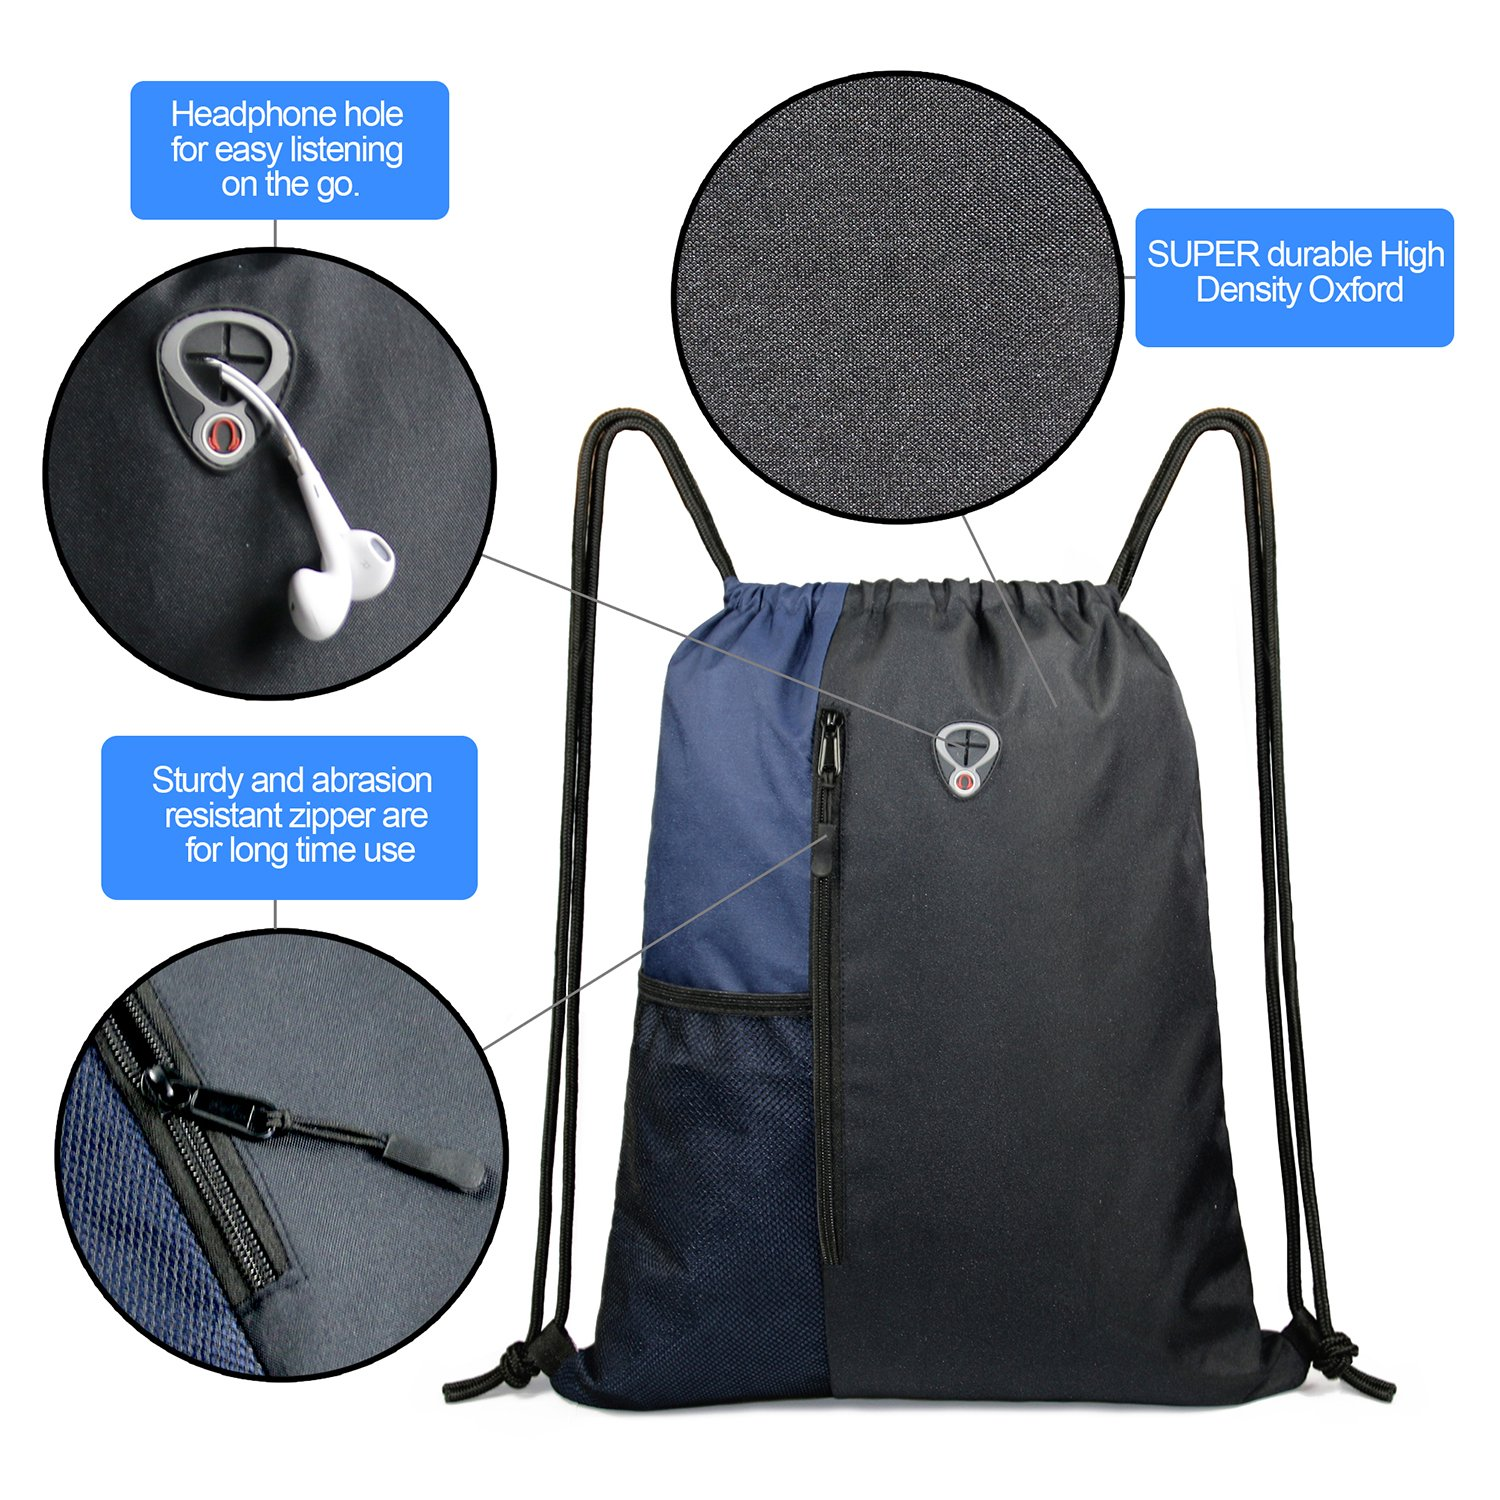 Drawstring Backpack Sports Gym Bag for Women Men Children Large Size with Zipper and Water Bottle Mesh Pockets (Black/Navy) by BeeGreen (Image #3)